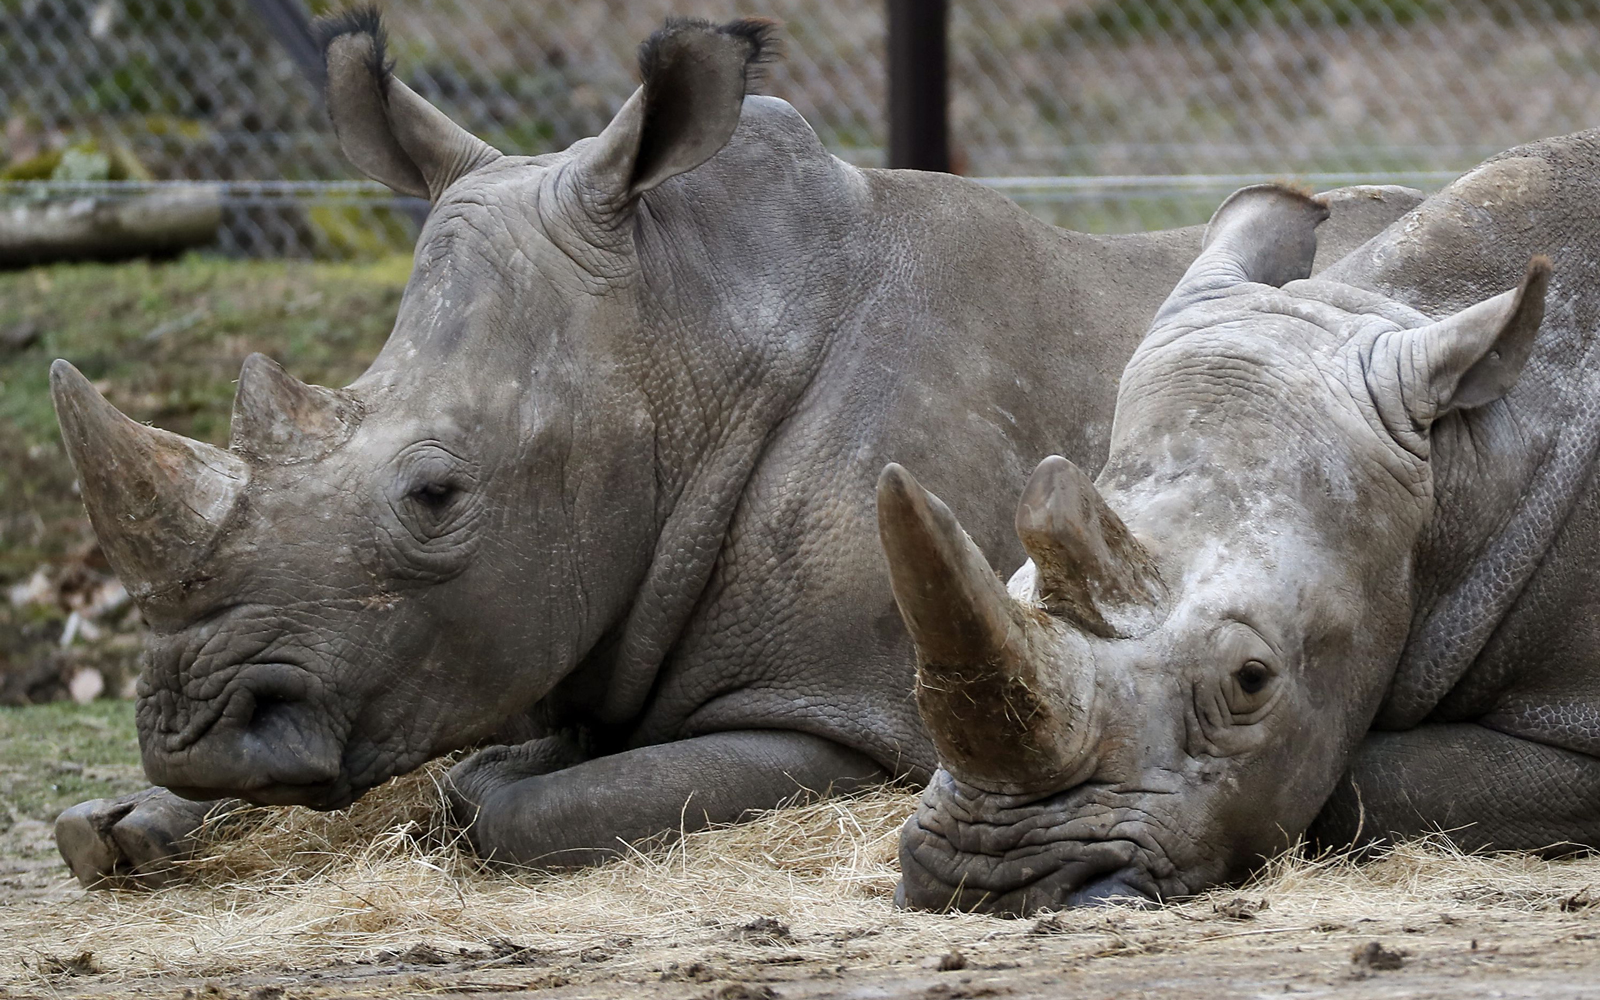 A Czech Zoo Is Sawing the Horns Off Its Rhinos to Protect Them From Poachers